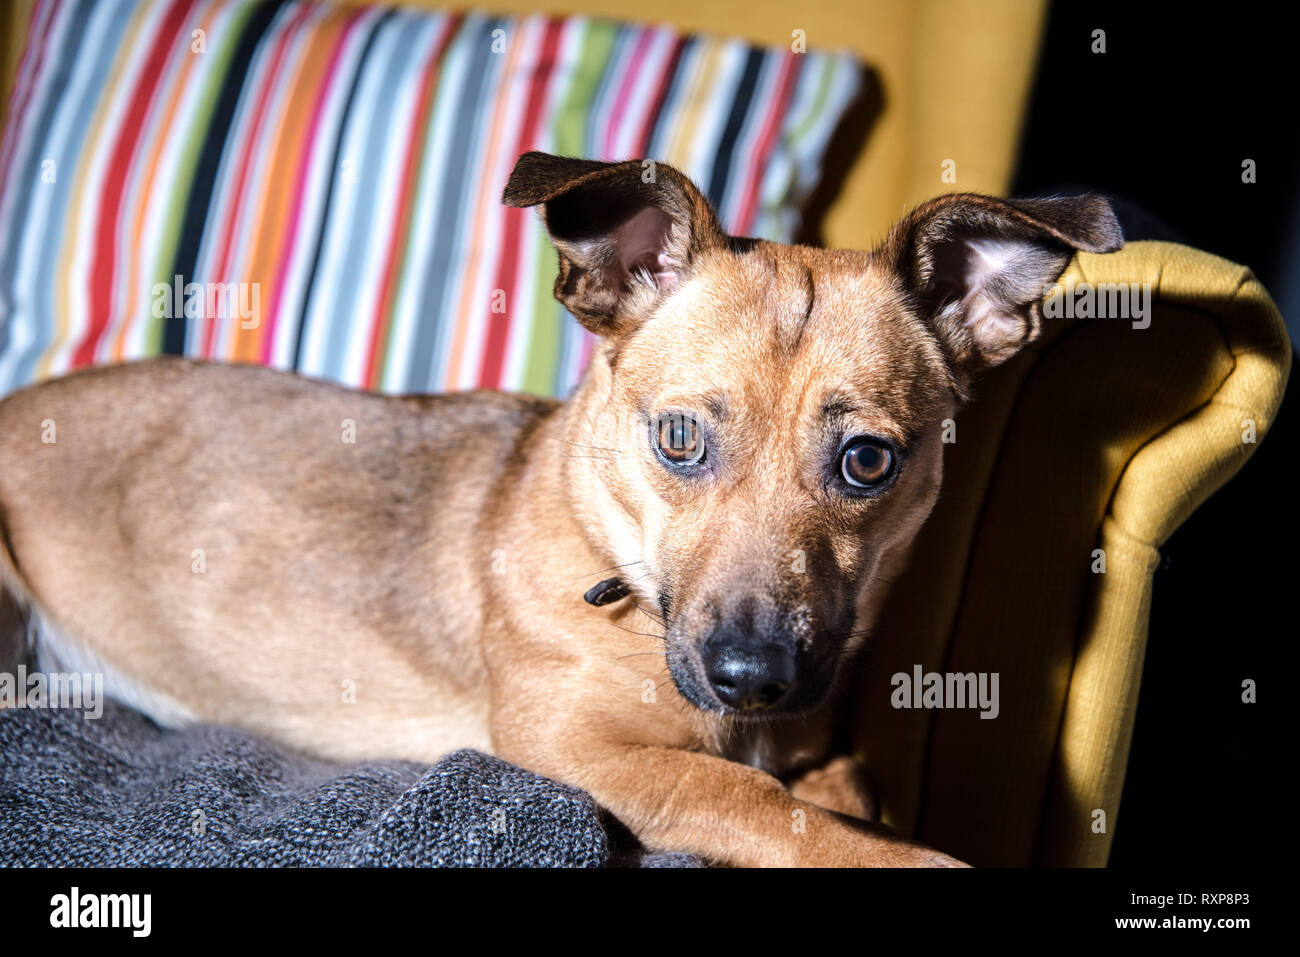 Cute brown puppy sitting on a sofa - dog photography ...